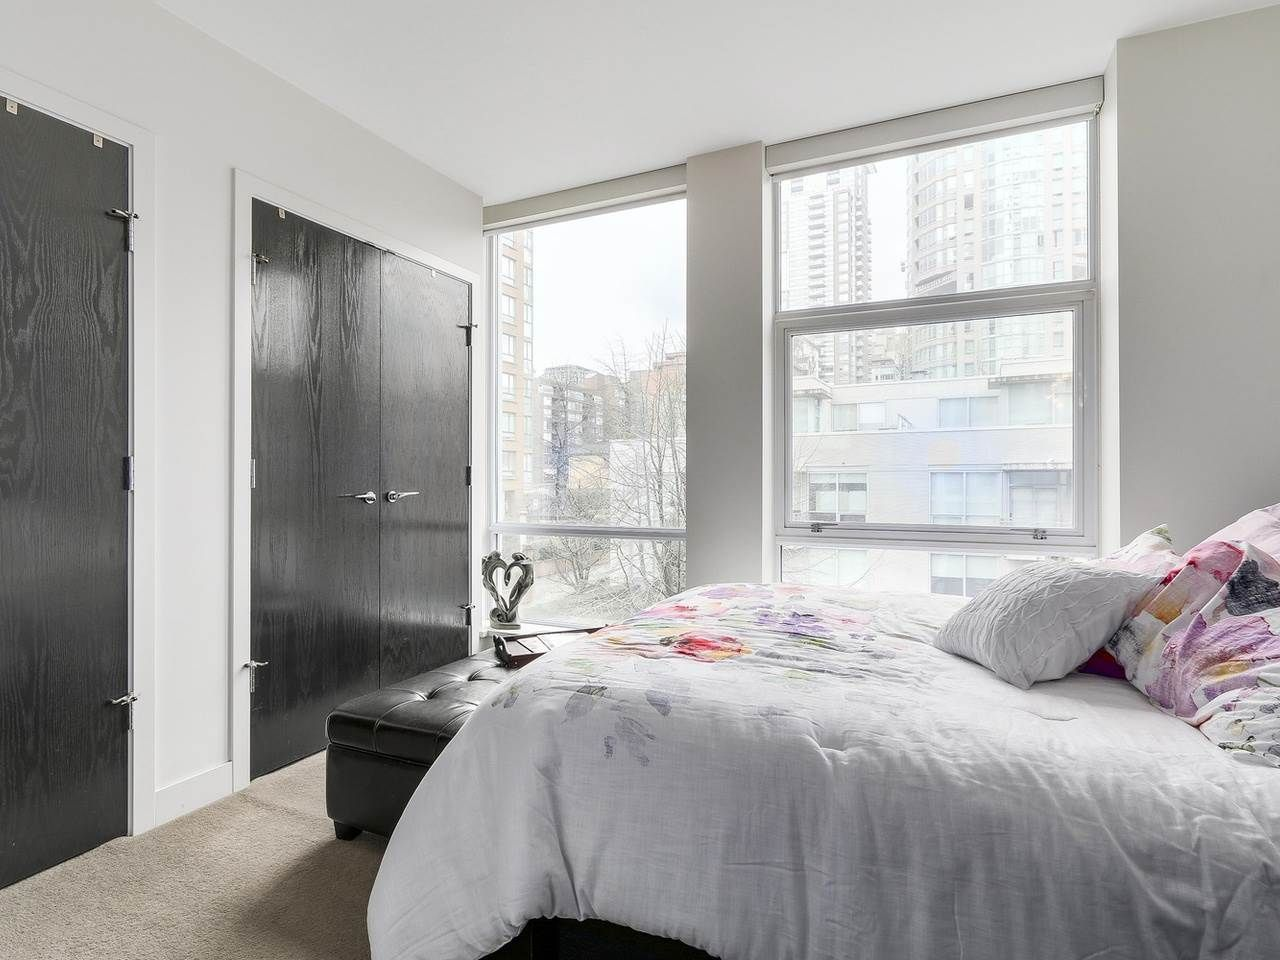 Photo 16: Photos: 401 1455 HOWE STREET in Vancouver: Yaletown Condo for sale (Vancouver West)  : MLS®# R2145939